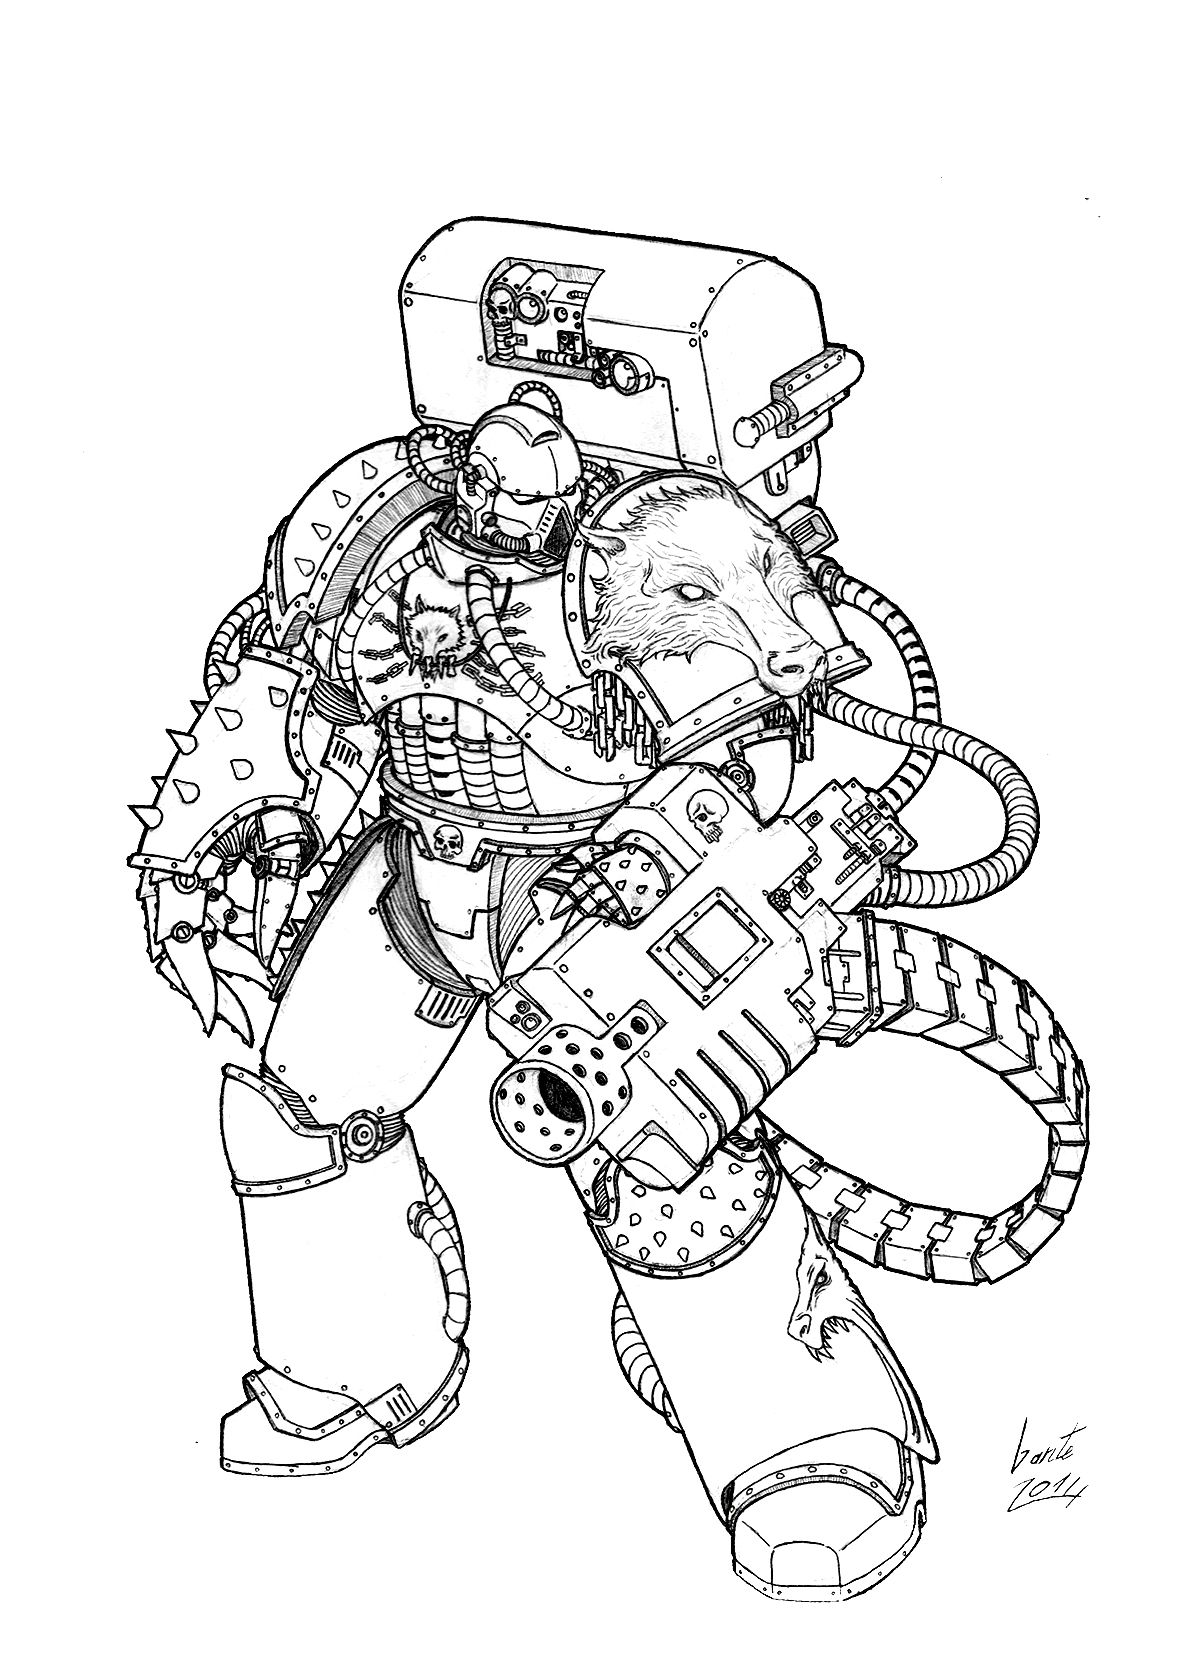 Favorite Piece Of 40k Art Page 64 Warhammer 40 000 Eternal